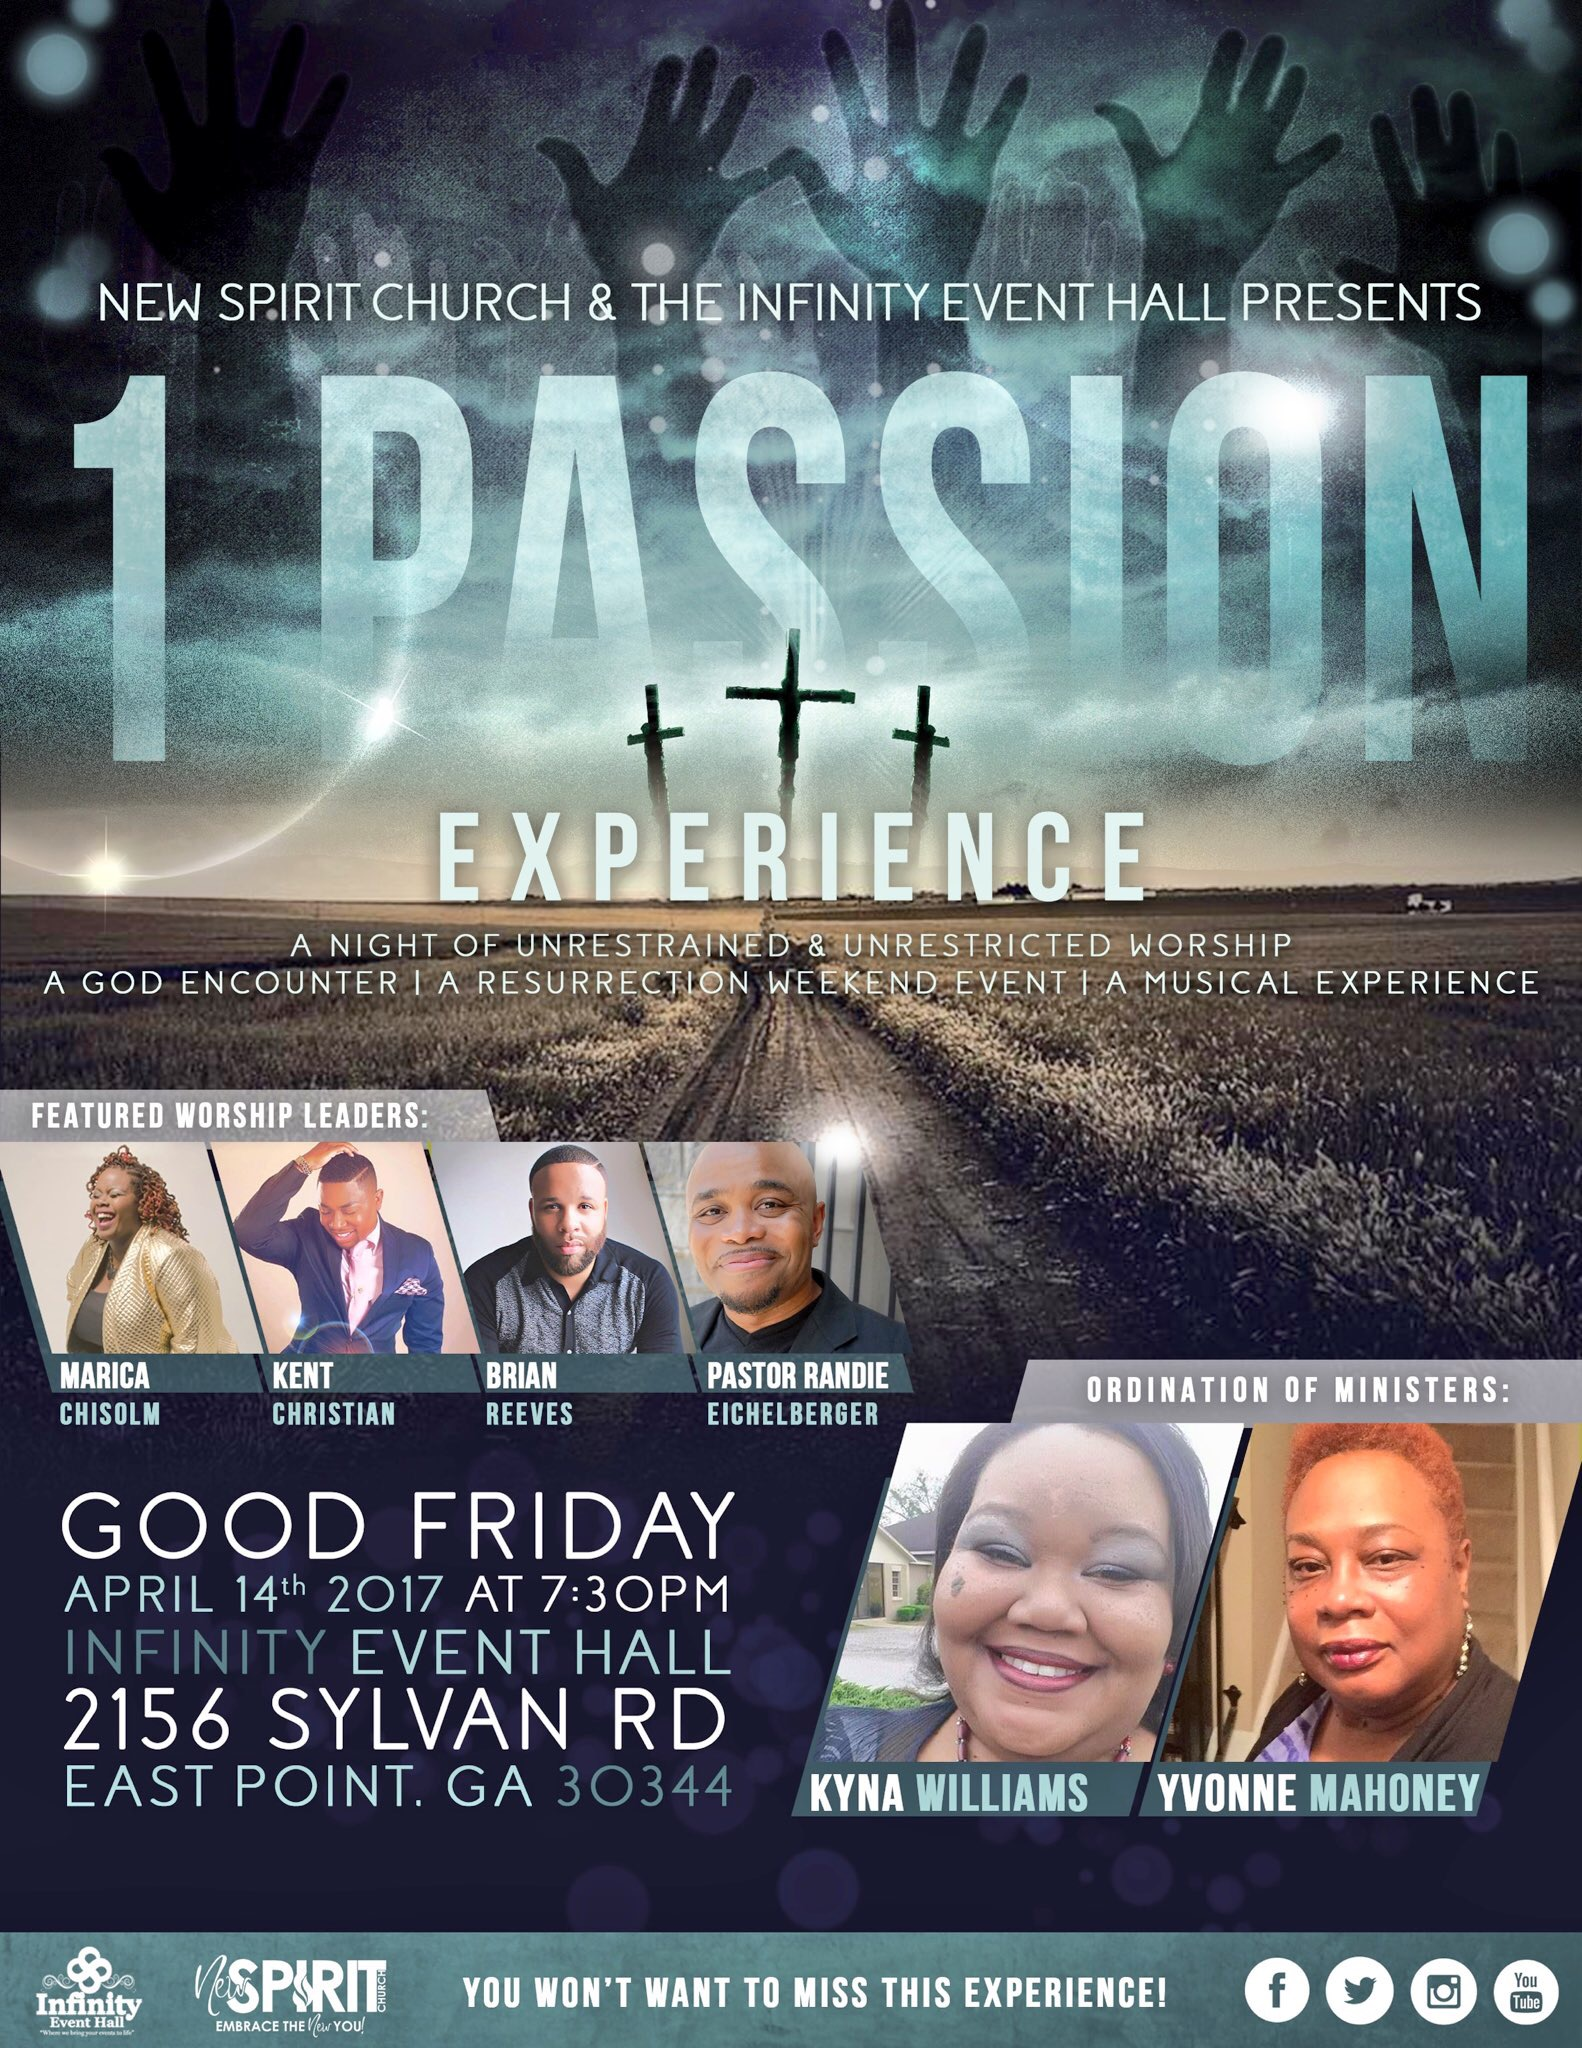 1 Passion Experience